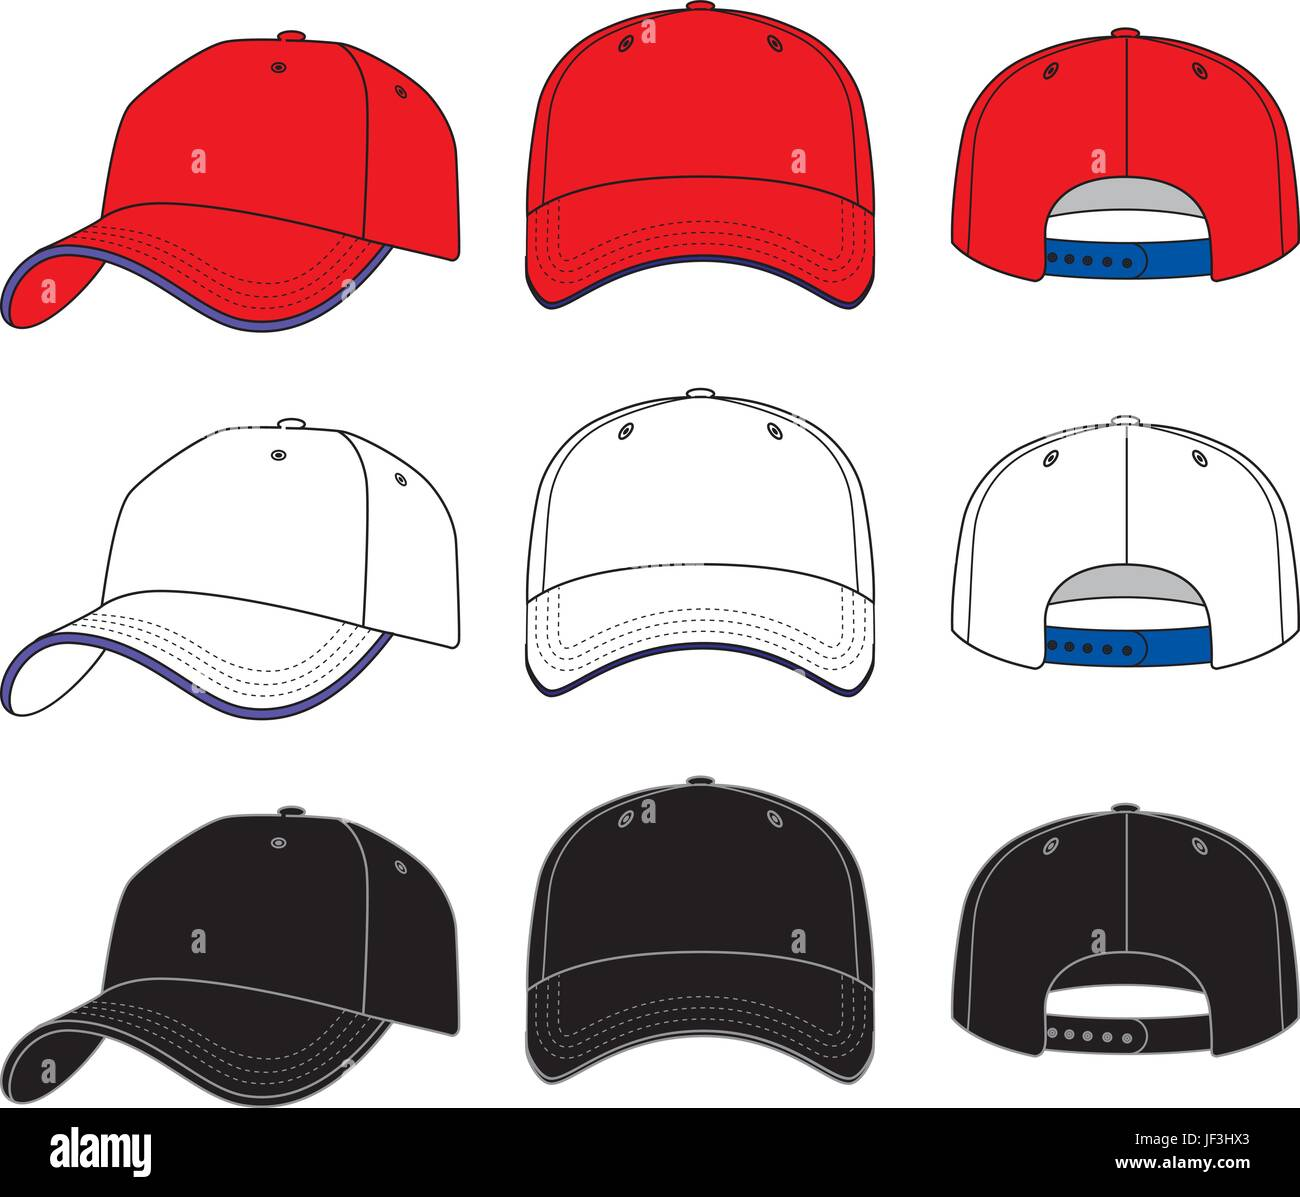 cfec4b56c0b Baseball cap vector customisable for proofing trucker hat cap template  front back and side - Stock